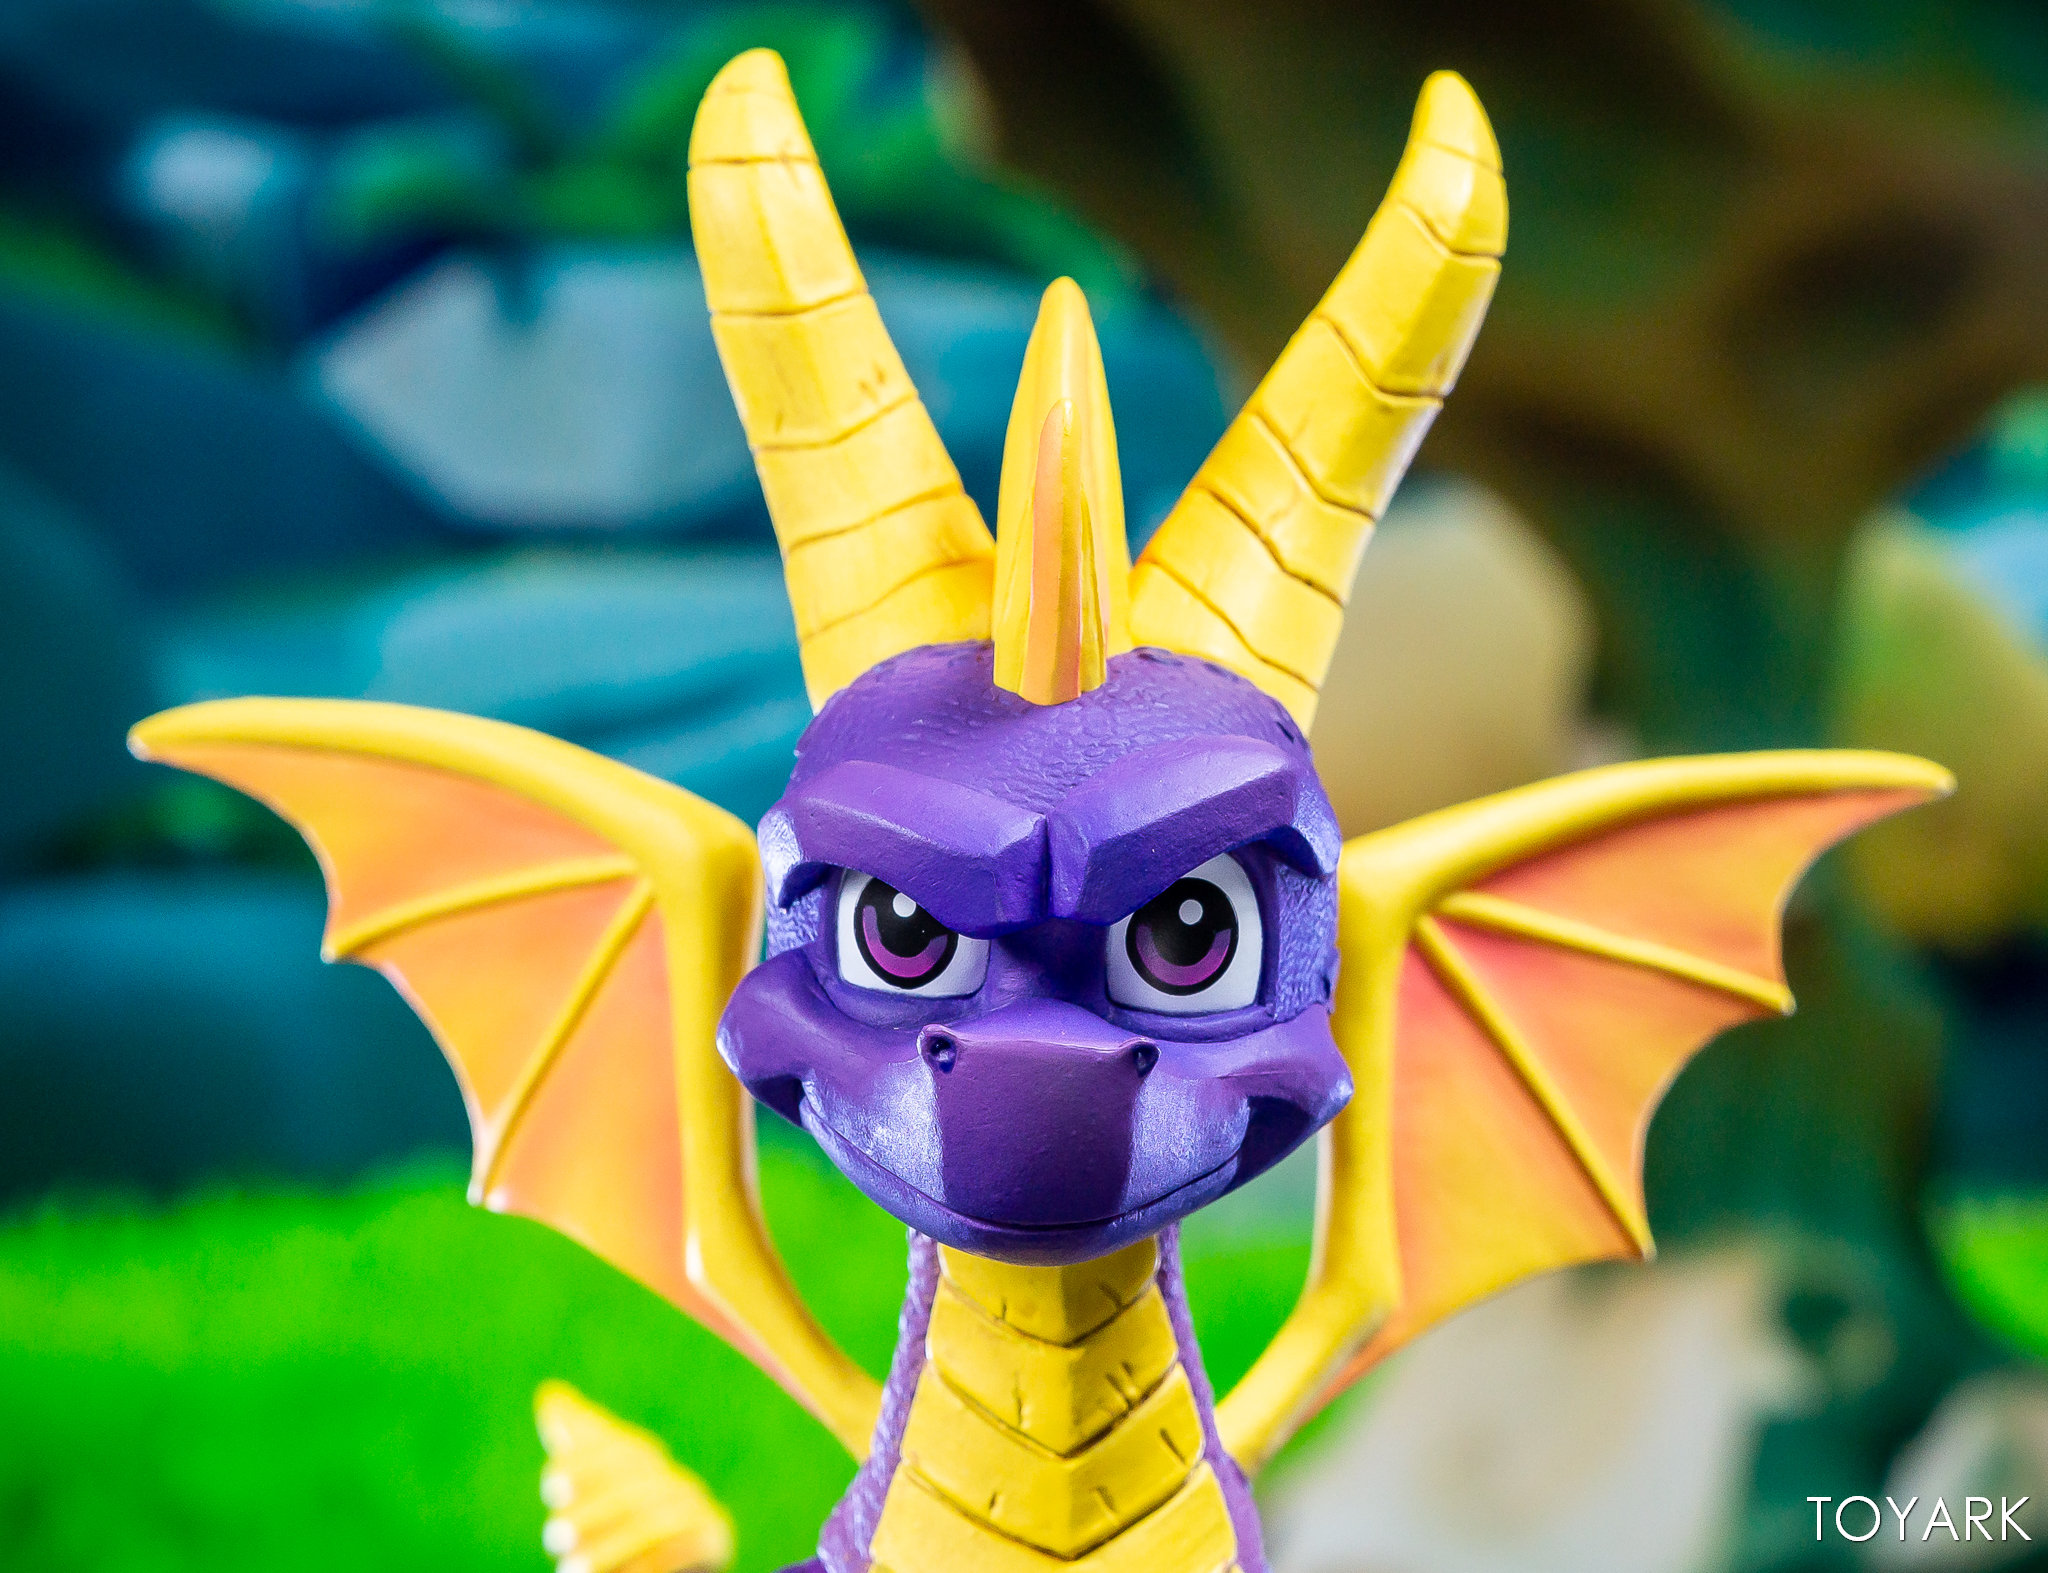 https://news.toyark.com/wp-content/uploads/sites/4/2019/03/NECA-Spyro-The-Dragon-Figure-028.jpg